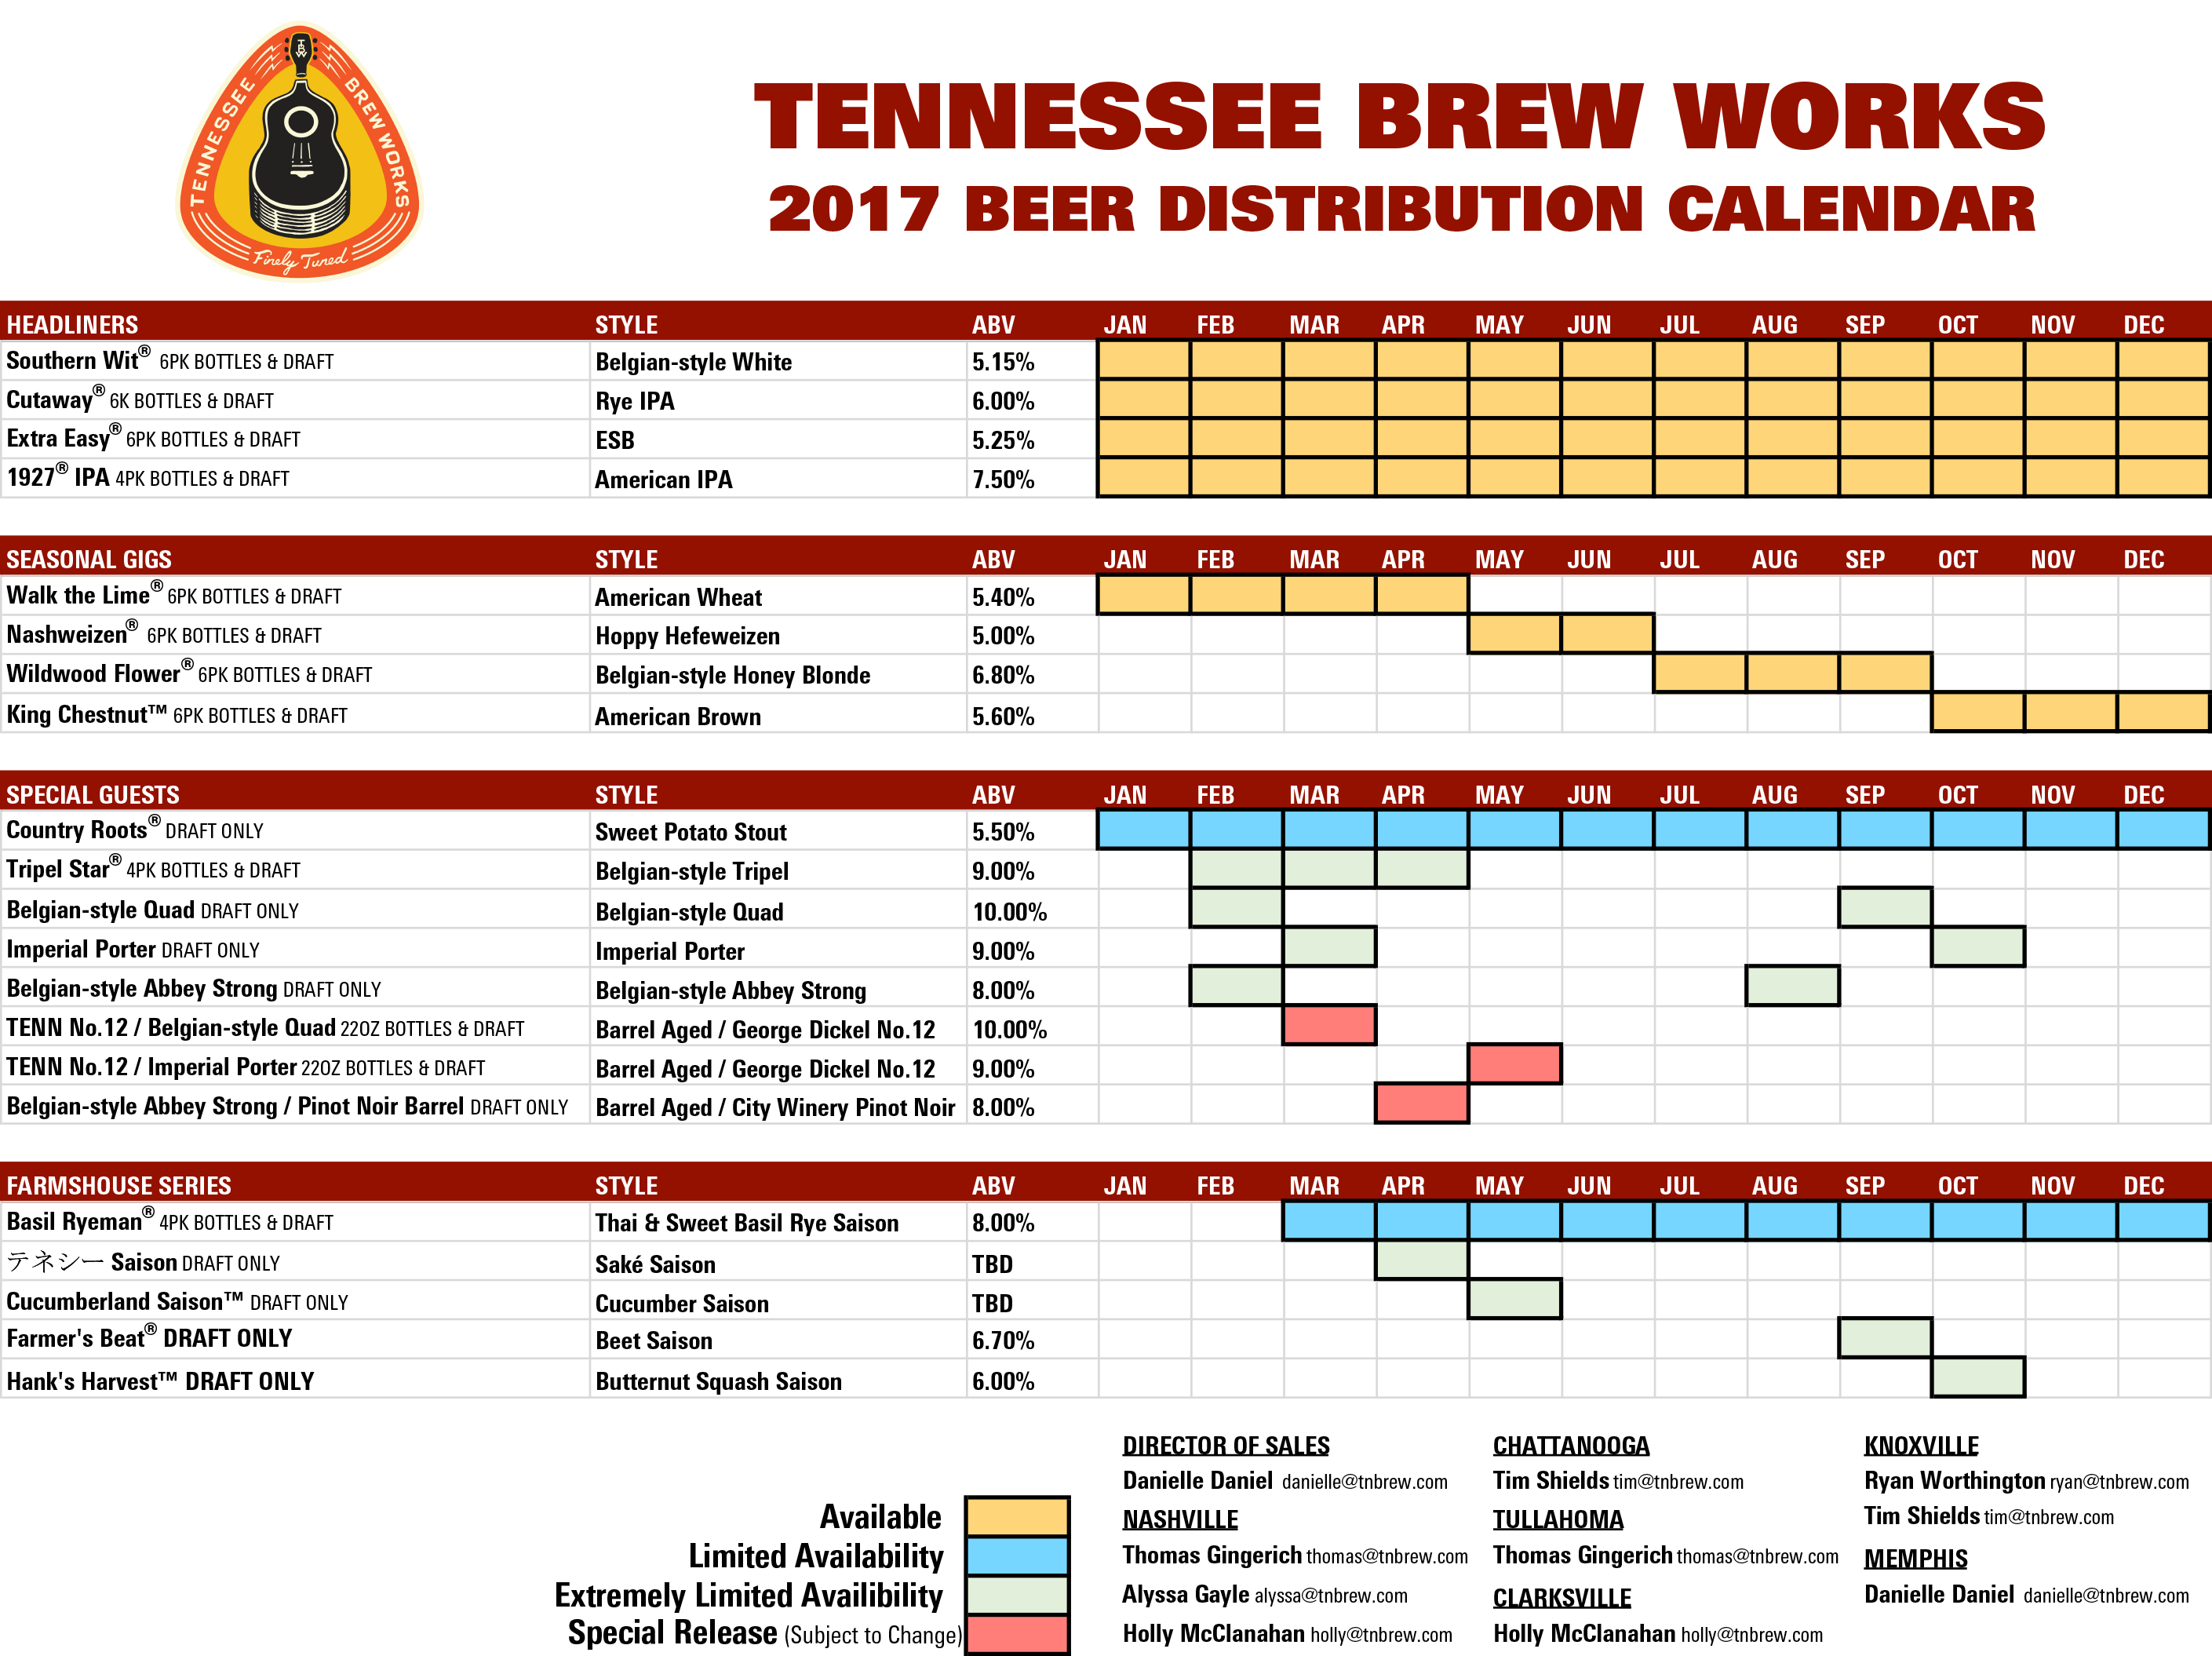 2017 Tennessee Brew Works Release Calendar